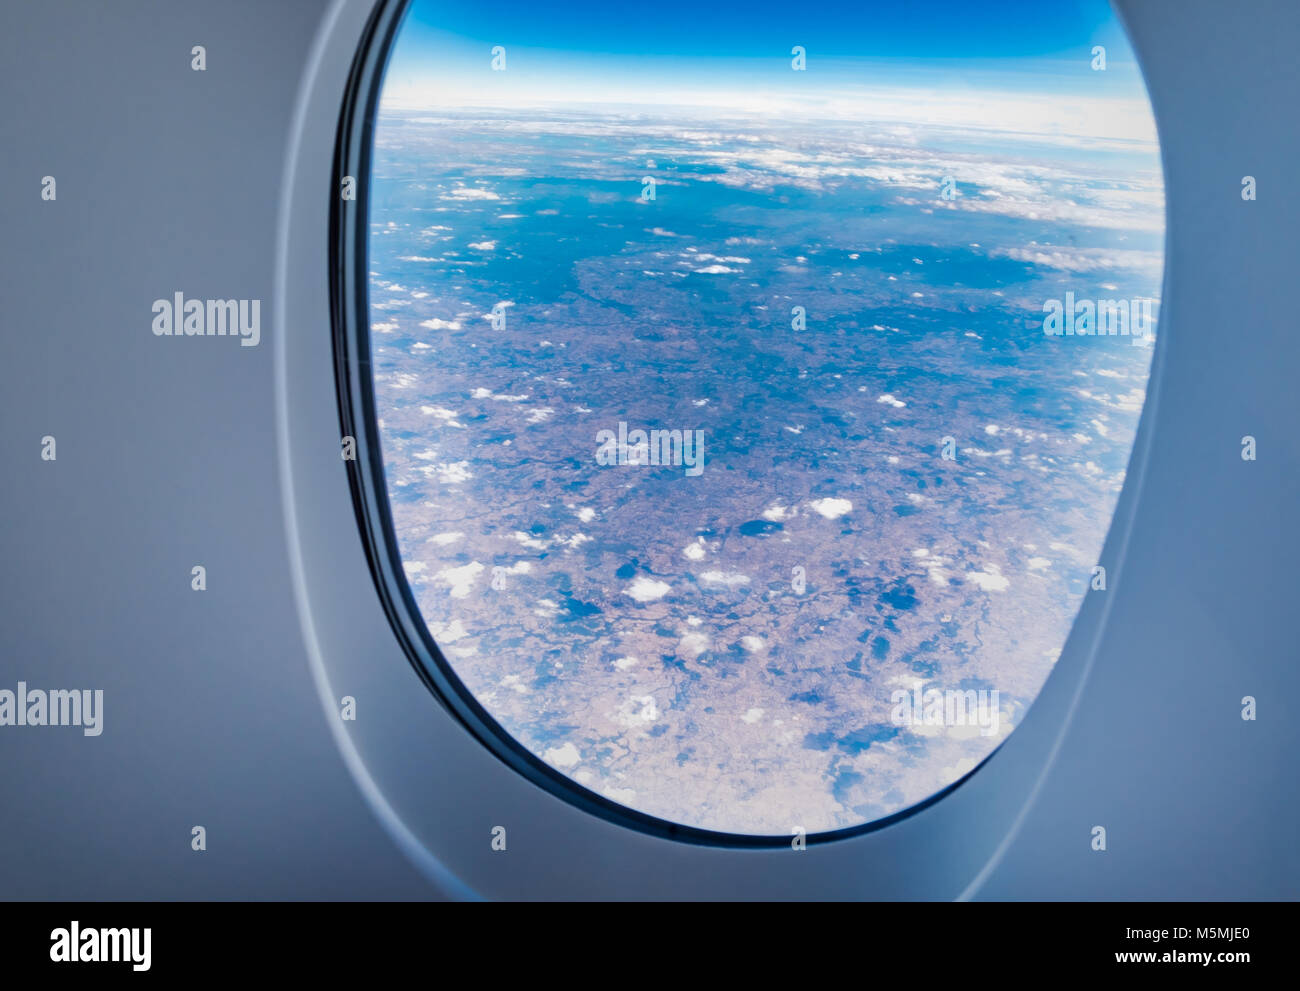 airplane window when flying see through at cloud and blue sky,Transportation,Travel concept. - Stock Image